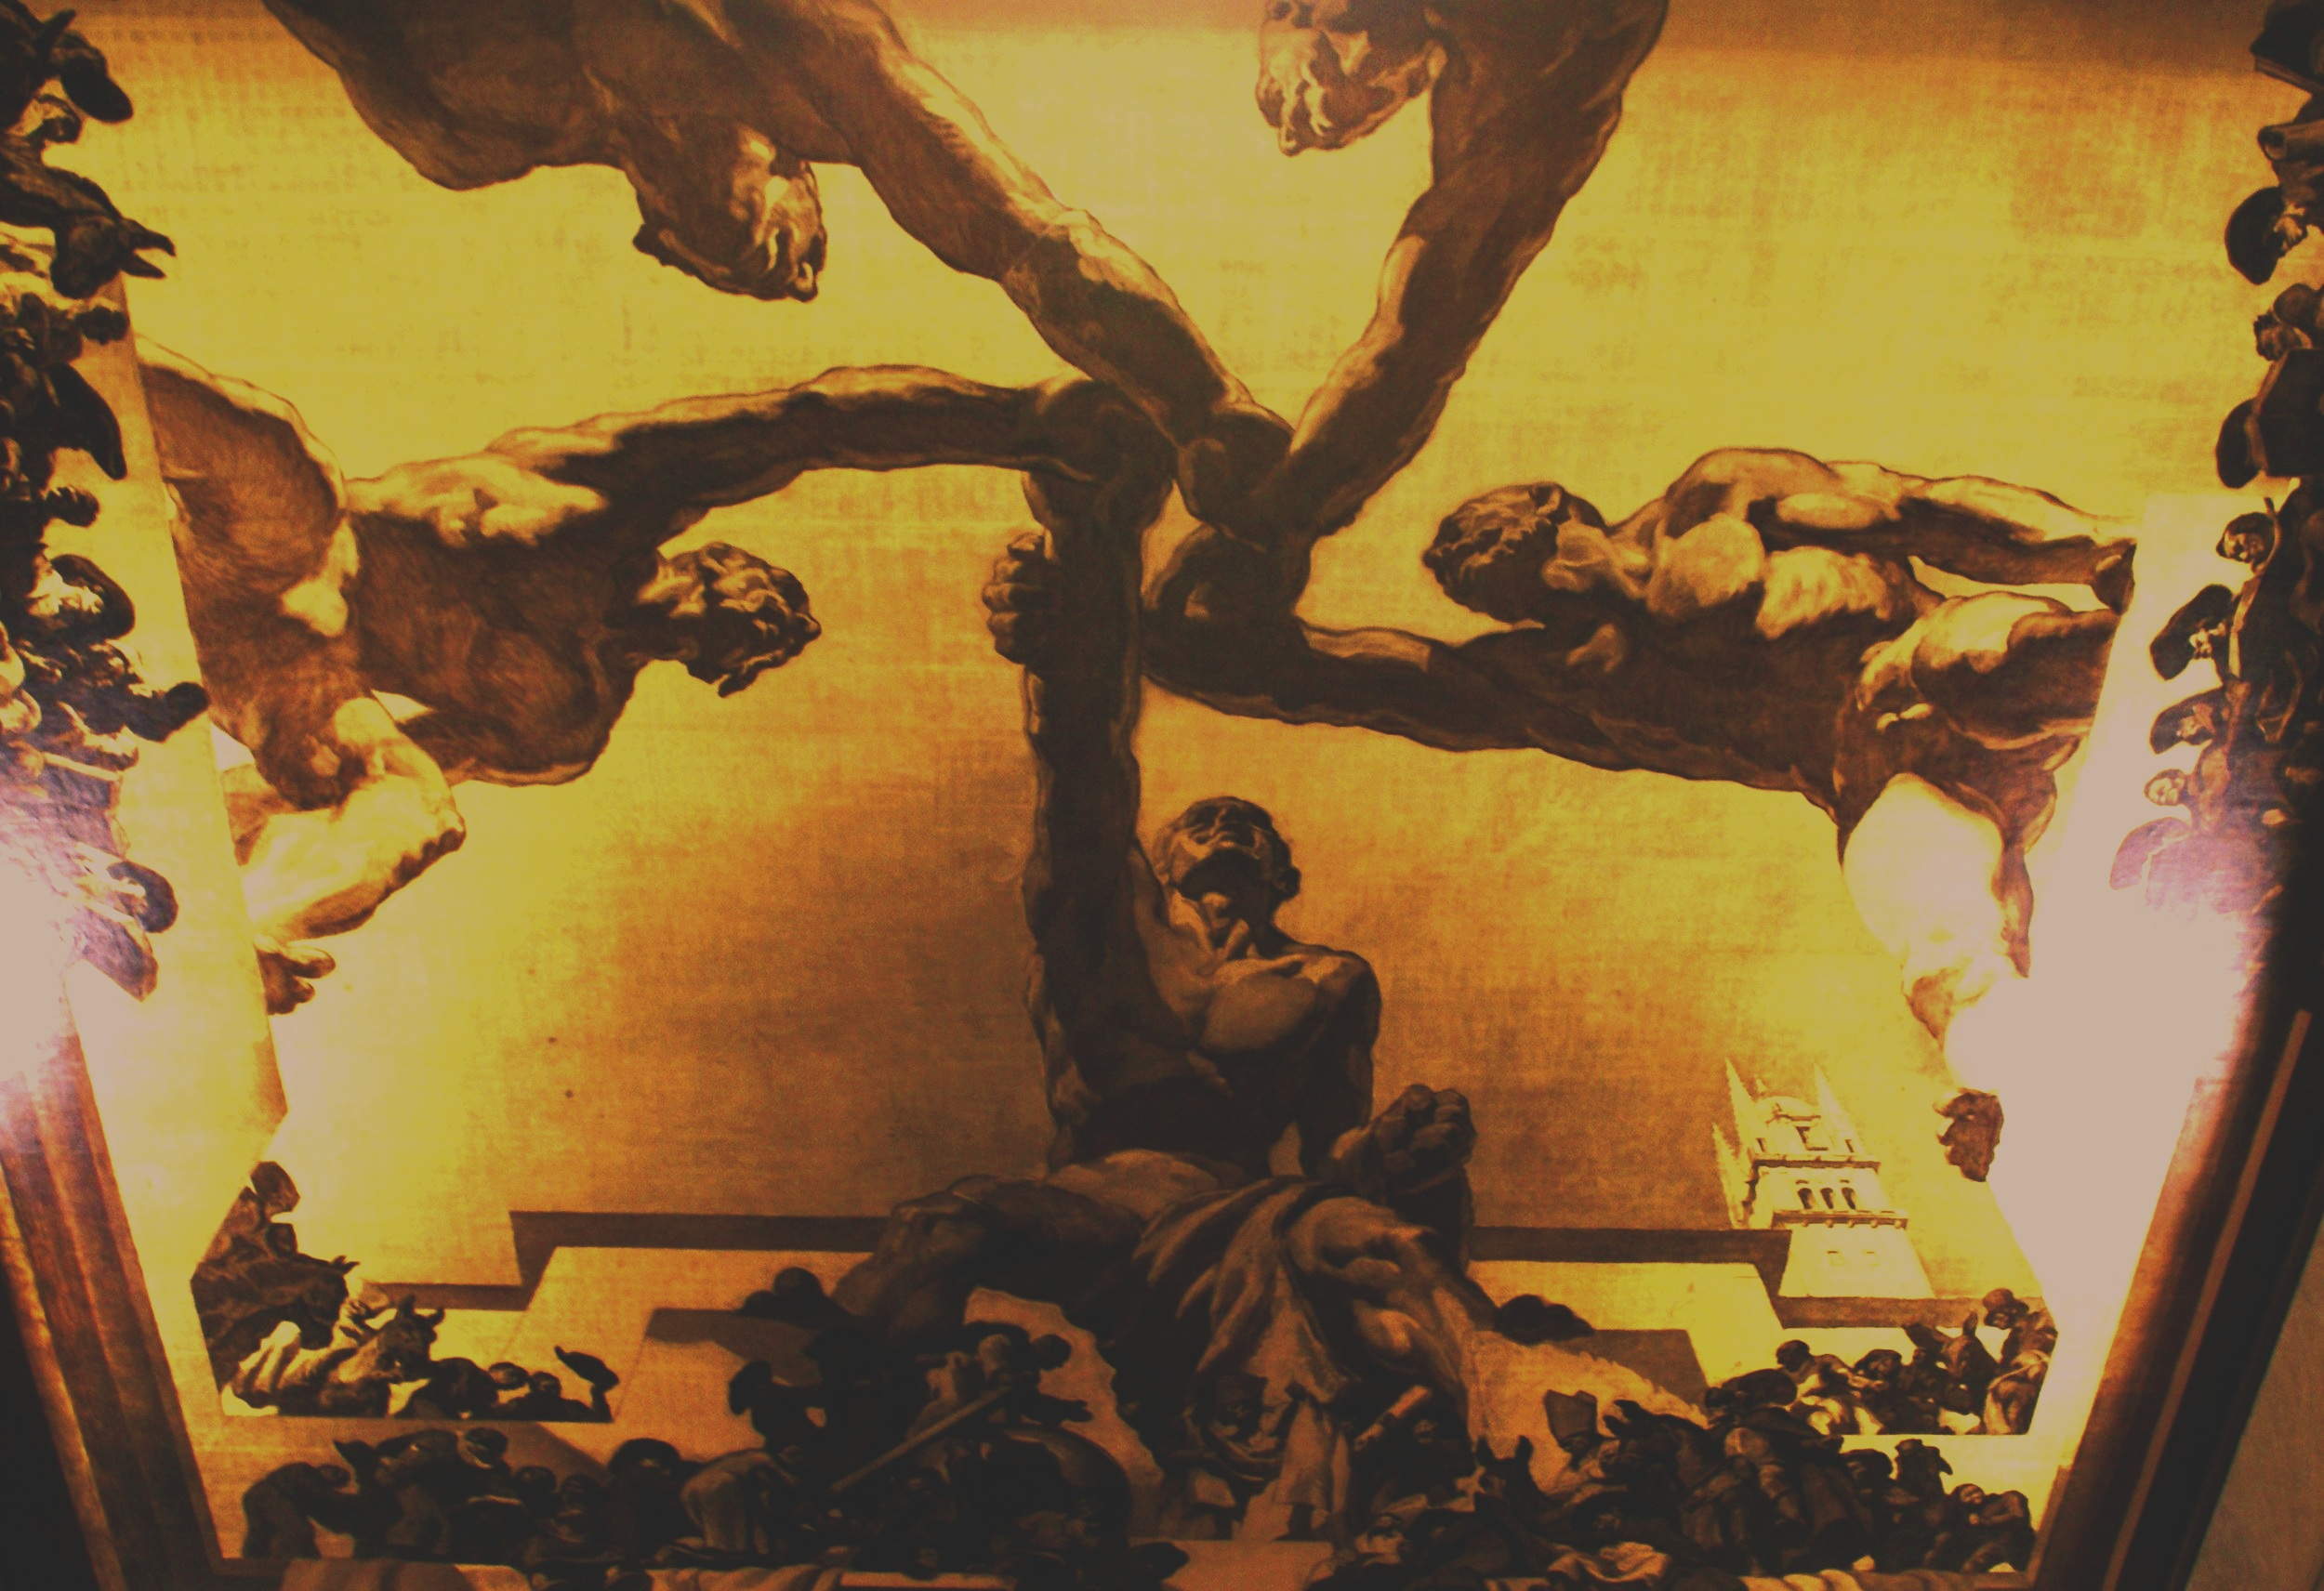 Mural by Catalan artist José Maria Sert, League of Nations Council Chamber